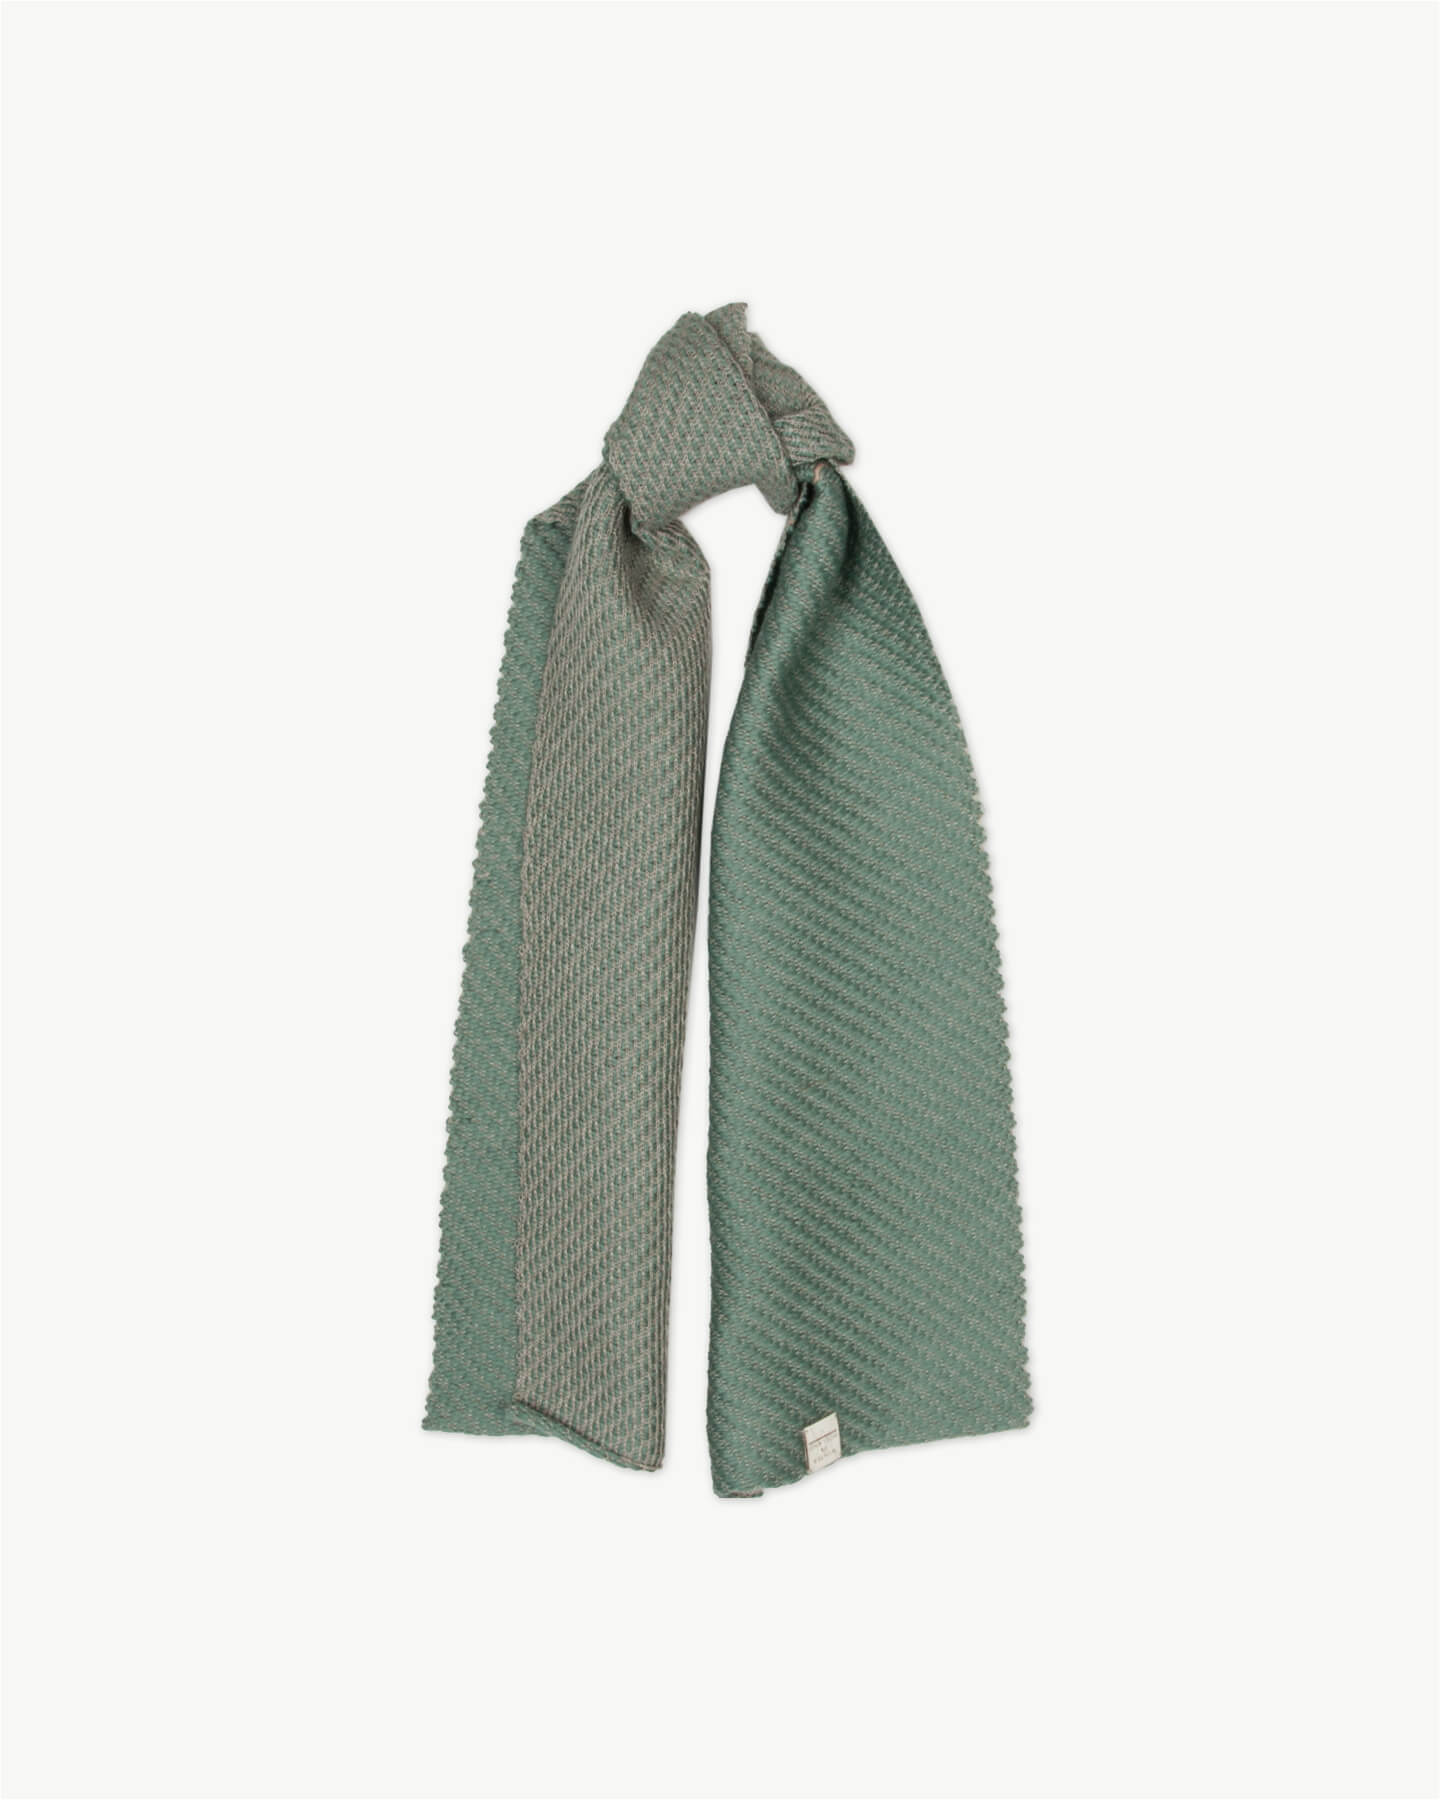 Shop our High quality scarf of wool